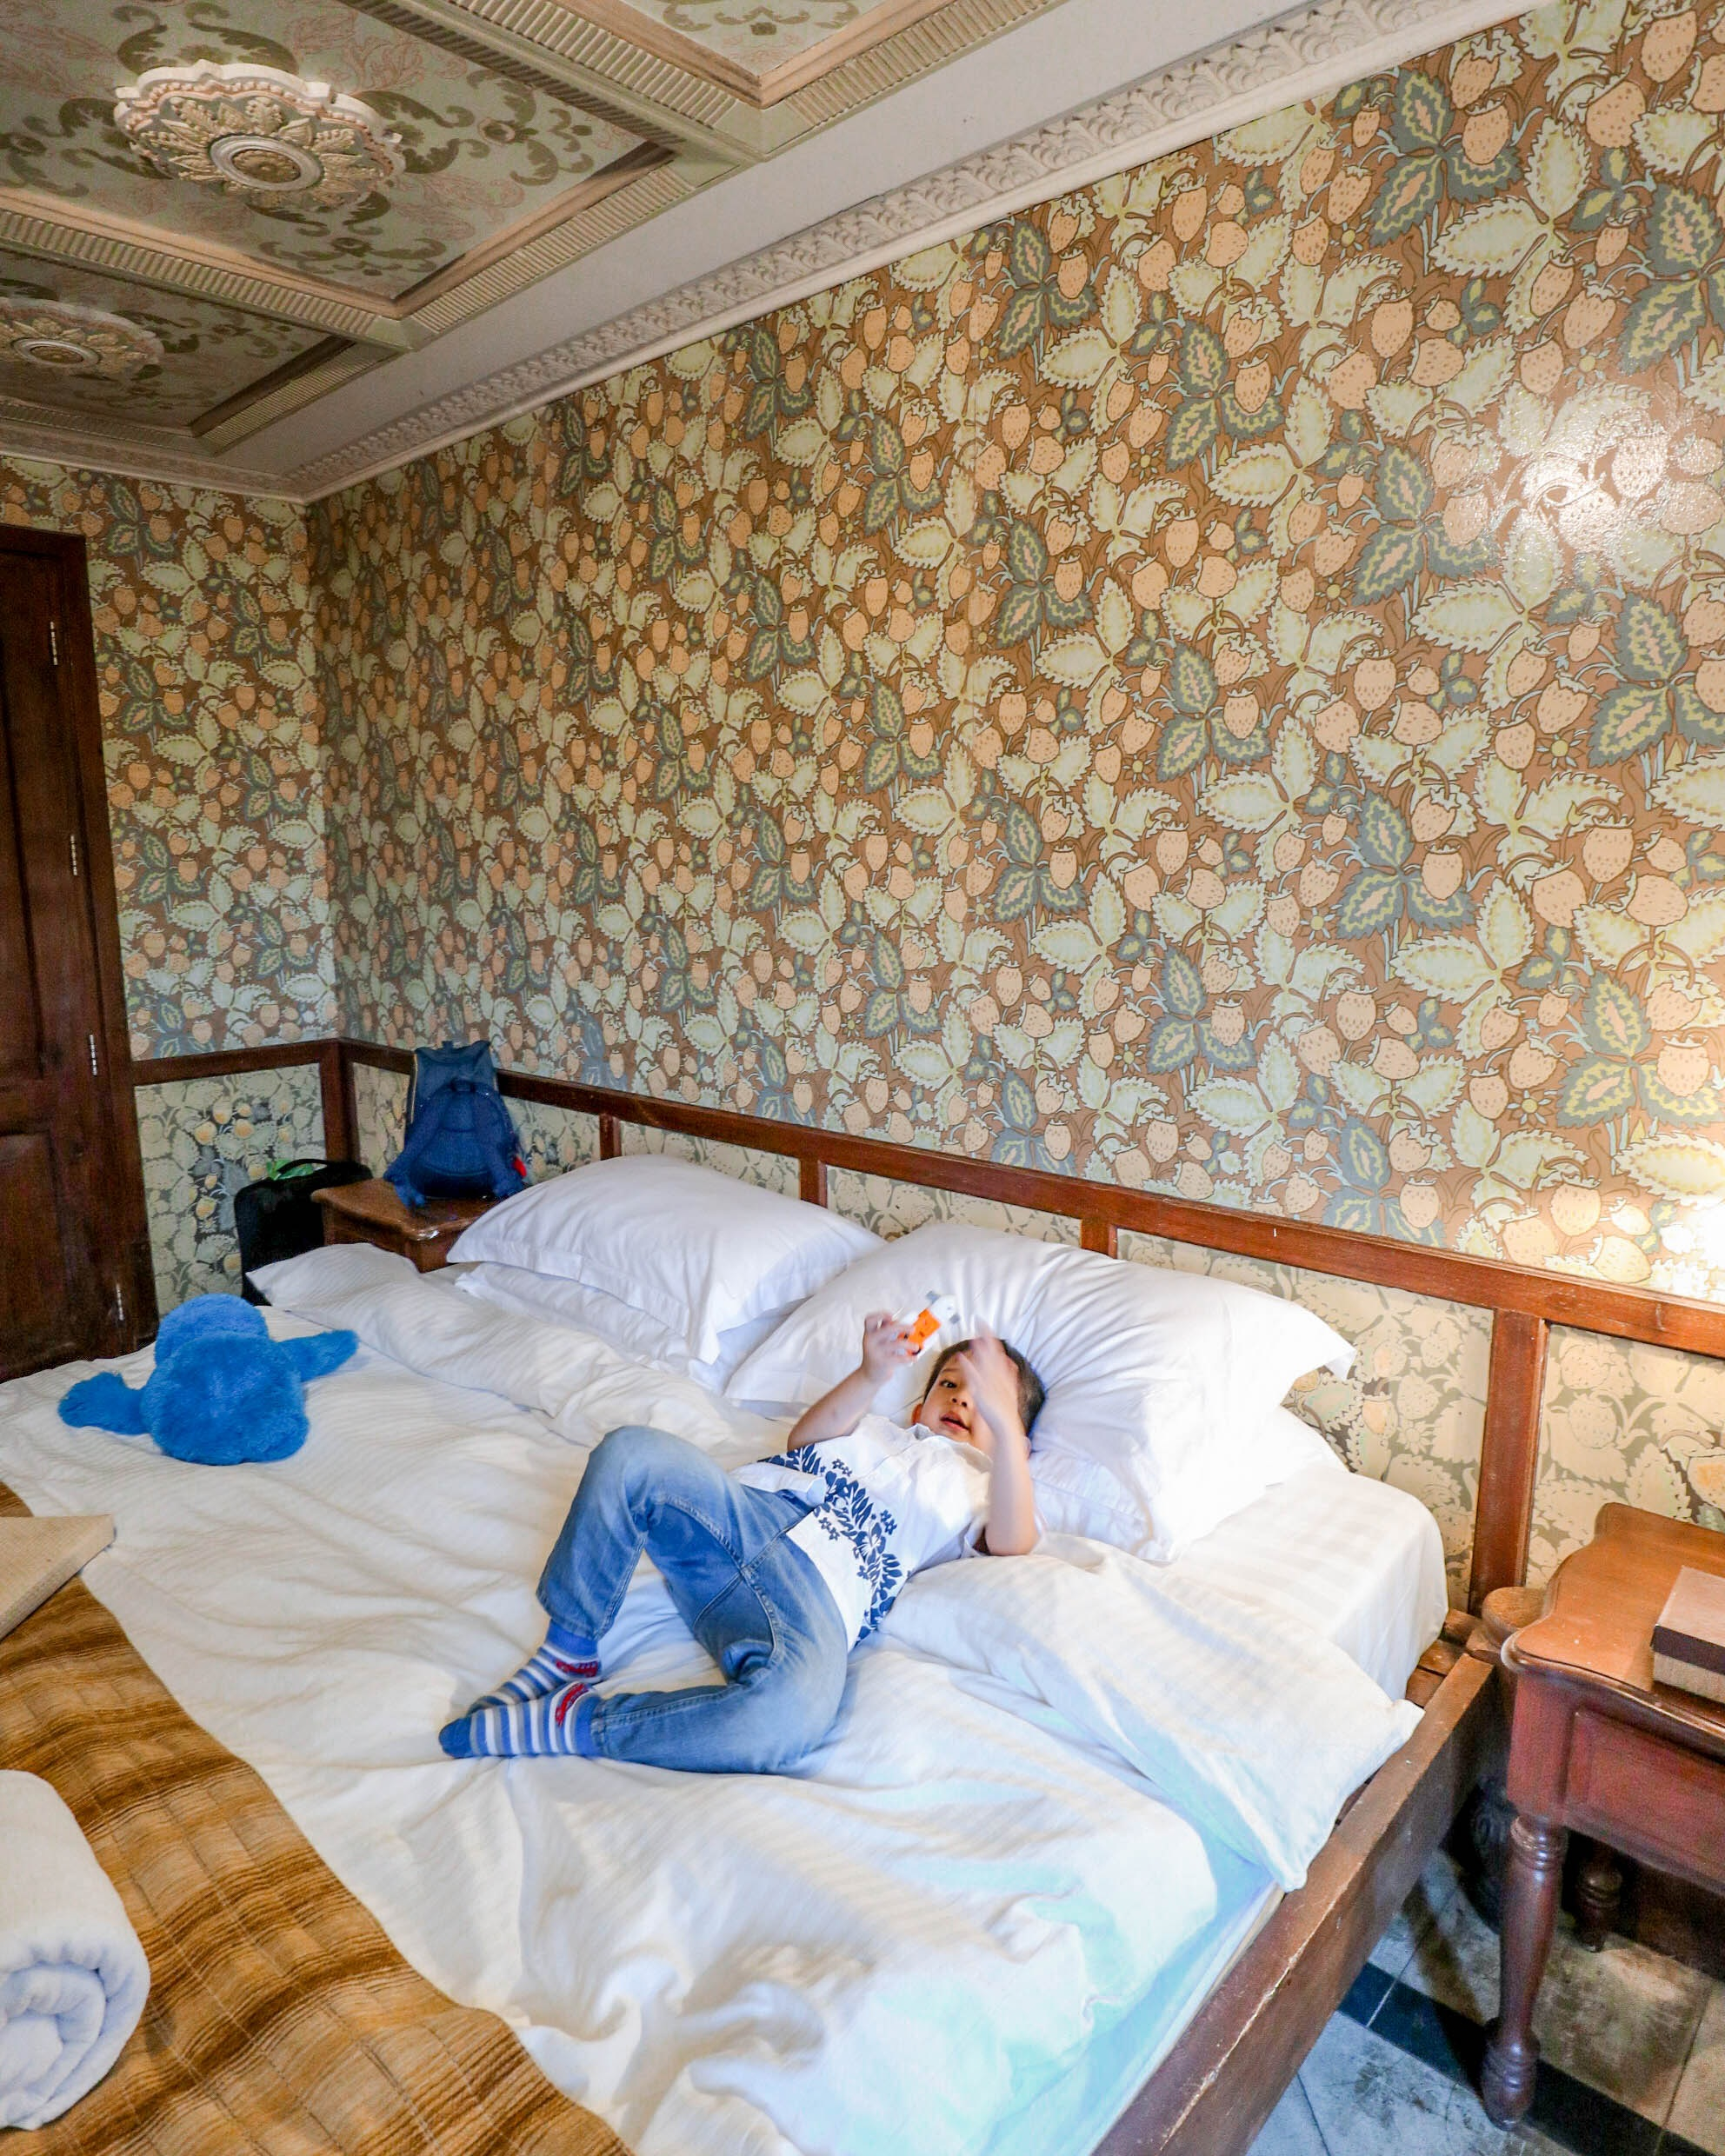 """Aesthetic On Point - Just recently, my parents treated us to an overnight stay at Las Casas. We booked a Deluxe Room. Check-in is at 3PM while check-out is at 12PM.This is probably the most """"old-school-ish"""" room we've ever stayed in. Aesthetic kind of creeped me out a bit, but it was okay. I survived staying there for a night despite my paranoia and unnecessary fears. I mean when you open the door palang, you'll see a bare space with an old cabinet to your side. You'll have to pass this short hallway to get to the main room.However, I was very pleased to see how modern conveniences fitted in — we had soft, comfortable beds and of course, the television and aircon. There were ample sockets to charge stuff, and space for Yñigo to run around and go crazy.Complimentary items including coffee packets, toiletries, and slippers were provided.Overall, our stay was pleasant. Ohhhh and we were also so close to the beach, which was perfect for us - Ynñigo can build sandcastles, while Bobby and I can have coffee and cigs (the beach is the only one with the designated yo-yo area)."""